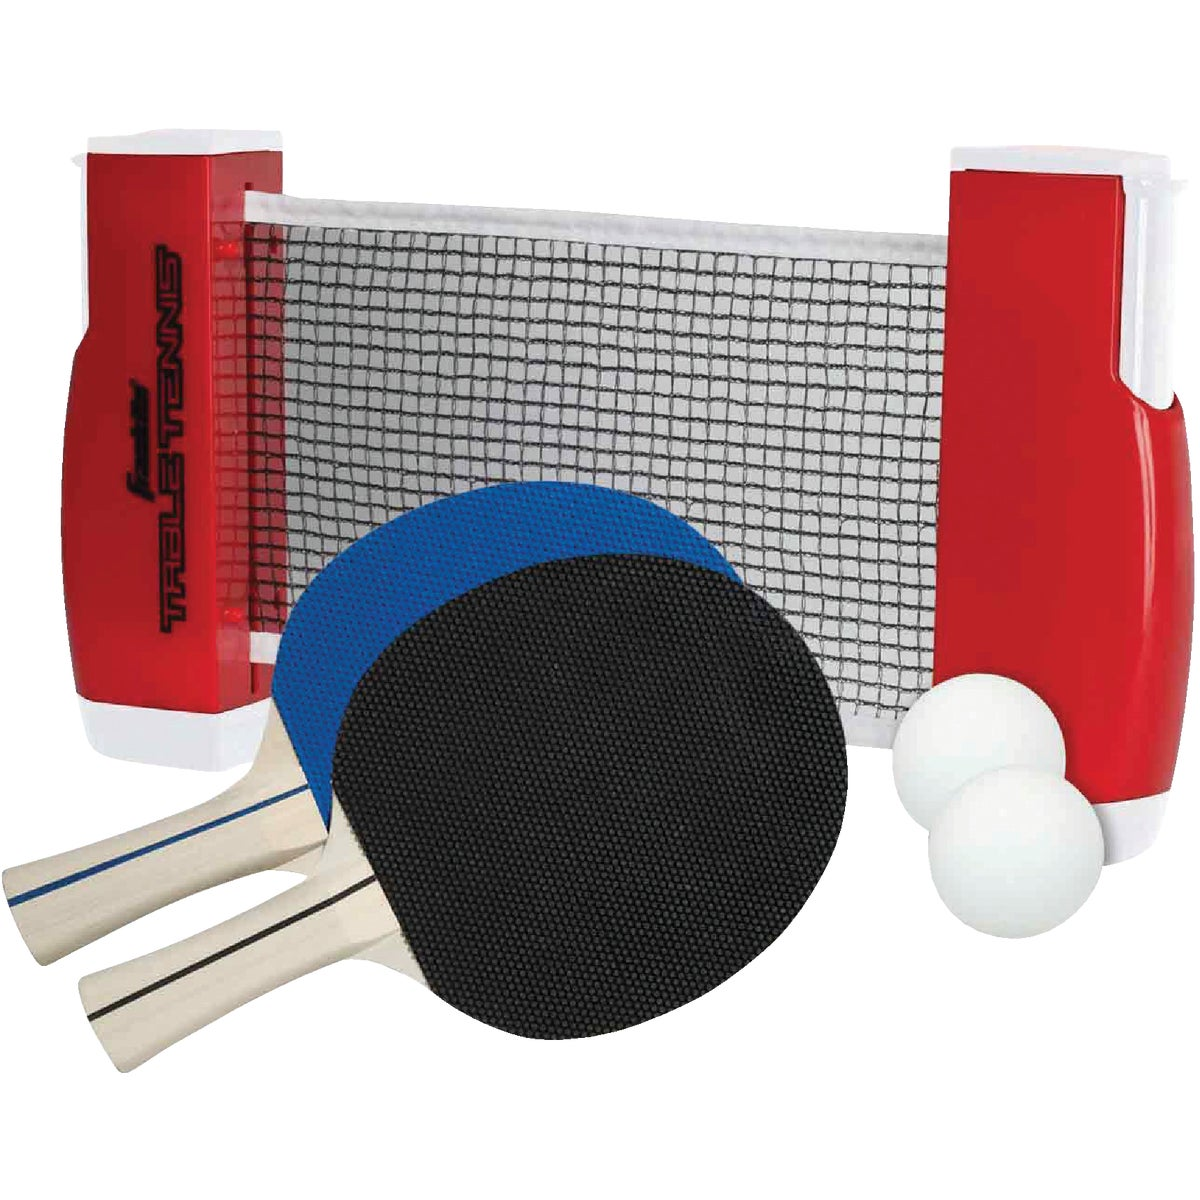 TO GO TABLE TENNIS - 6870 by Franklin Sports